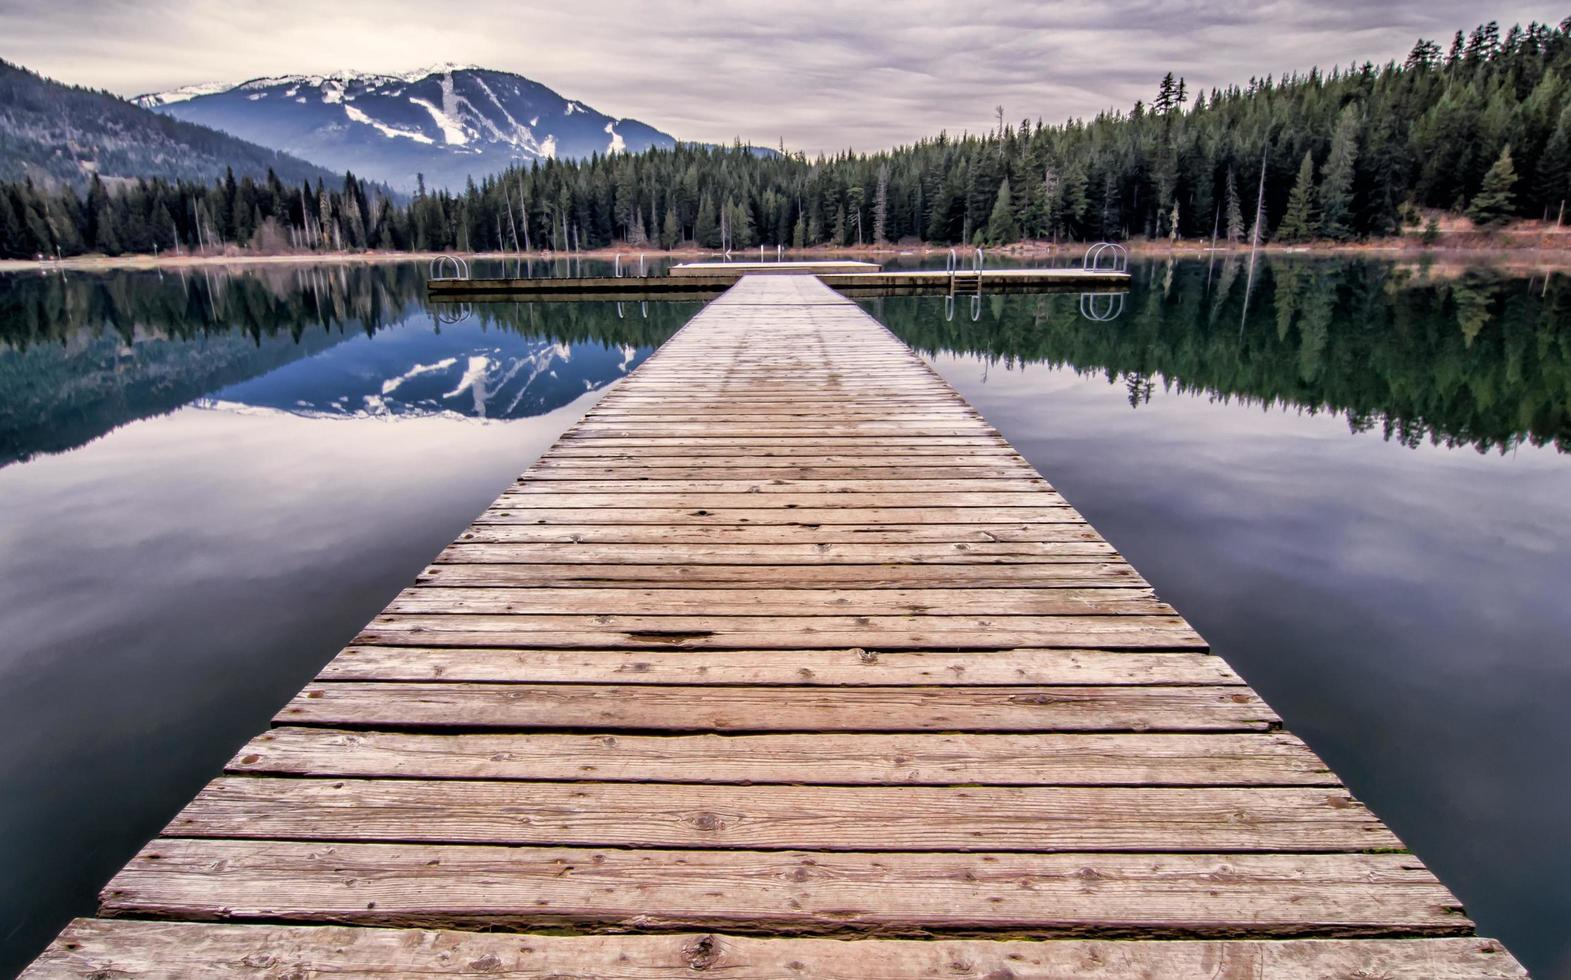 Wooden dock at lake during day photo